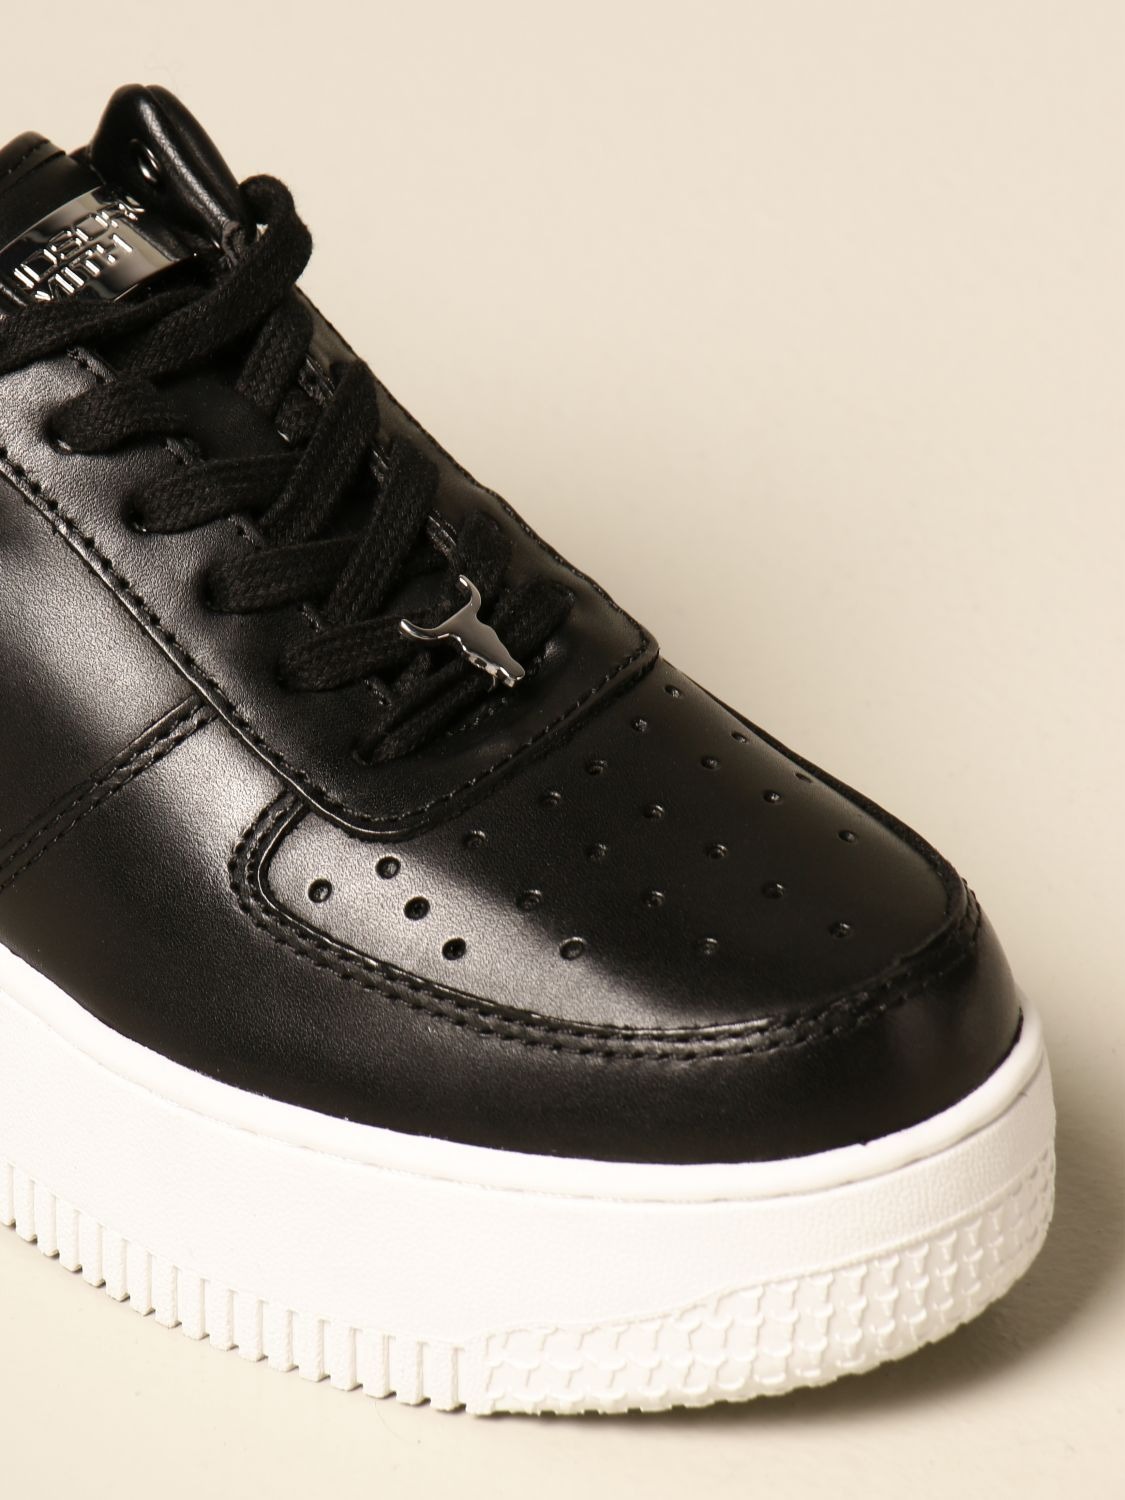 Sneakers Windsorsmith Asap: Windsorsmith sneakers in leather black 1 4